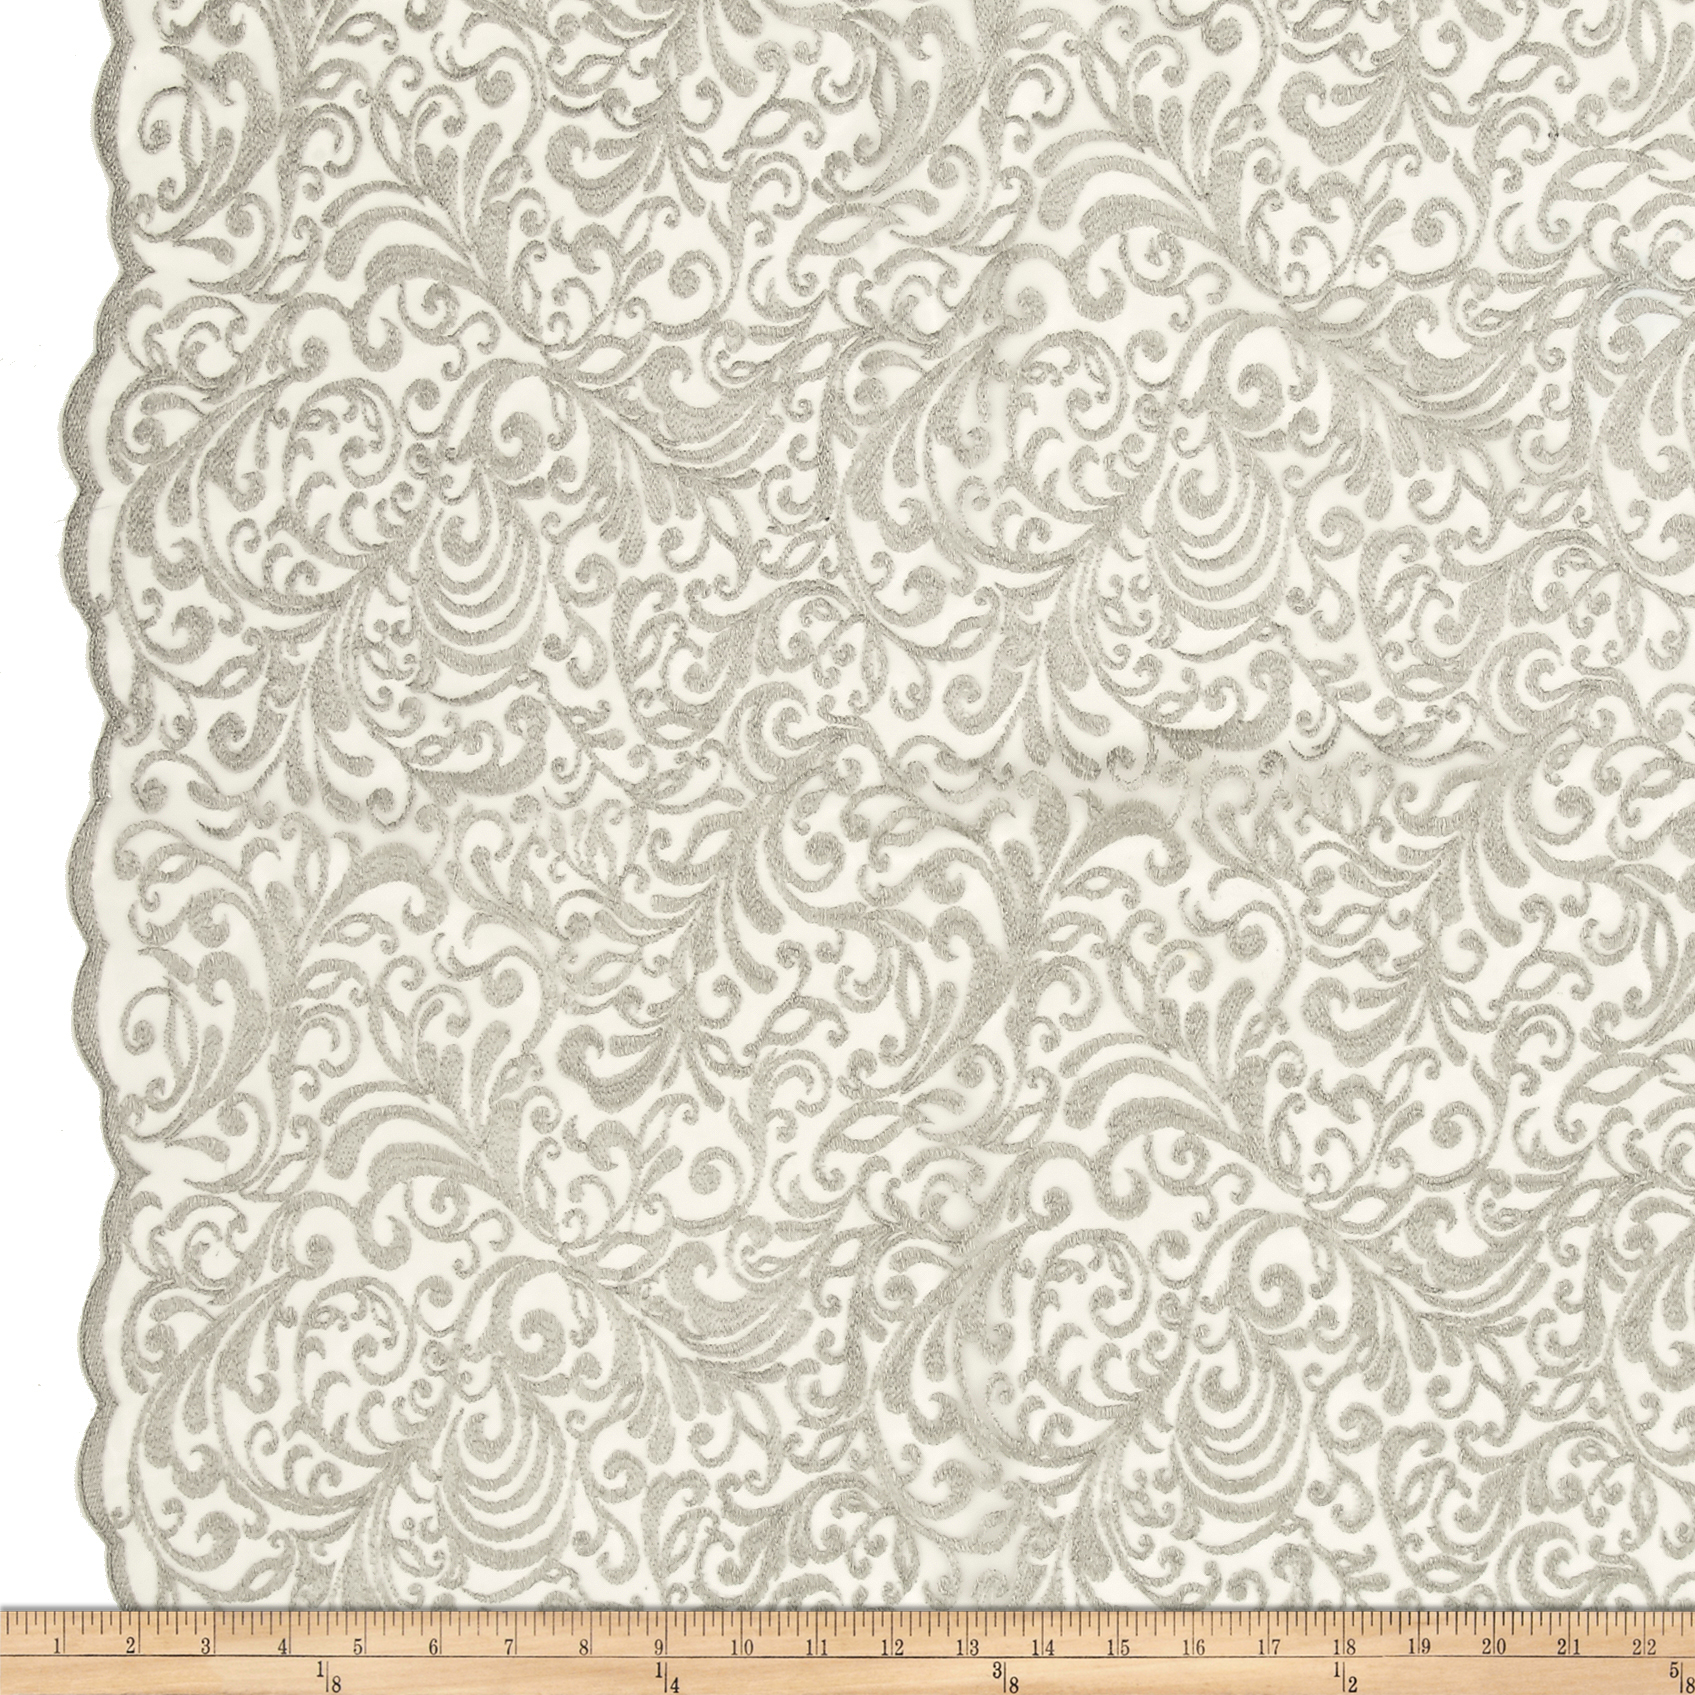 Telio Angelina Embroidery Mesh Lace Silver Fabric by Telio in USA